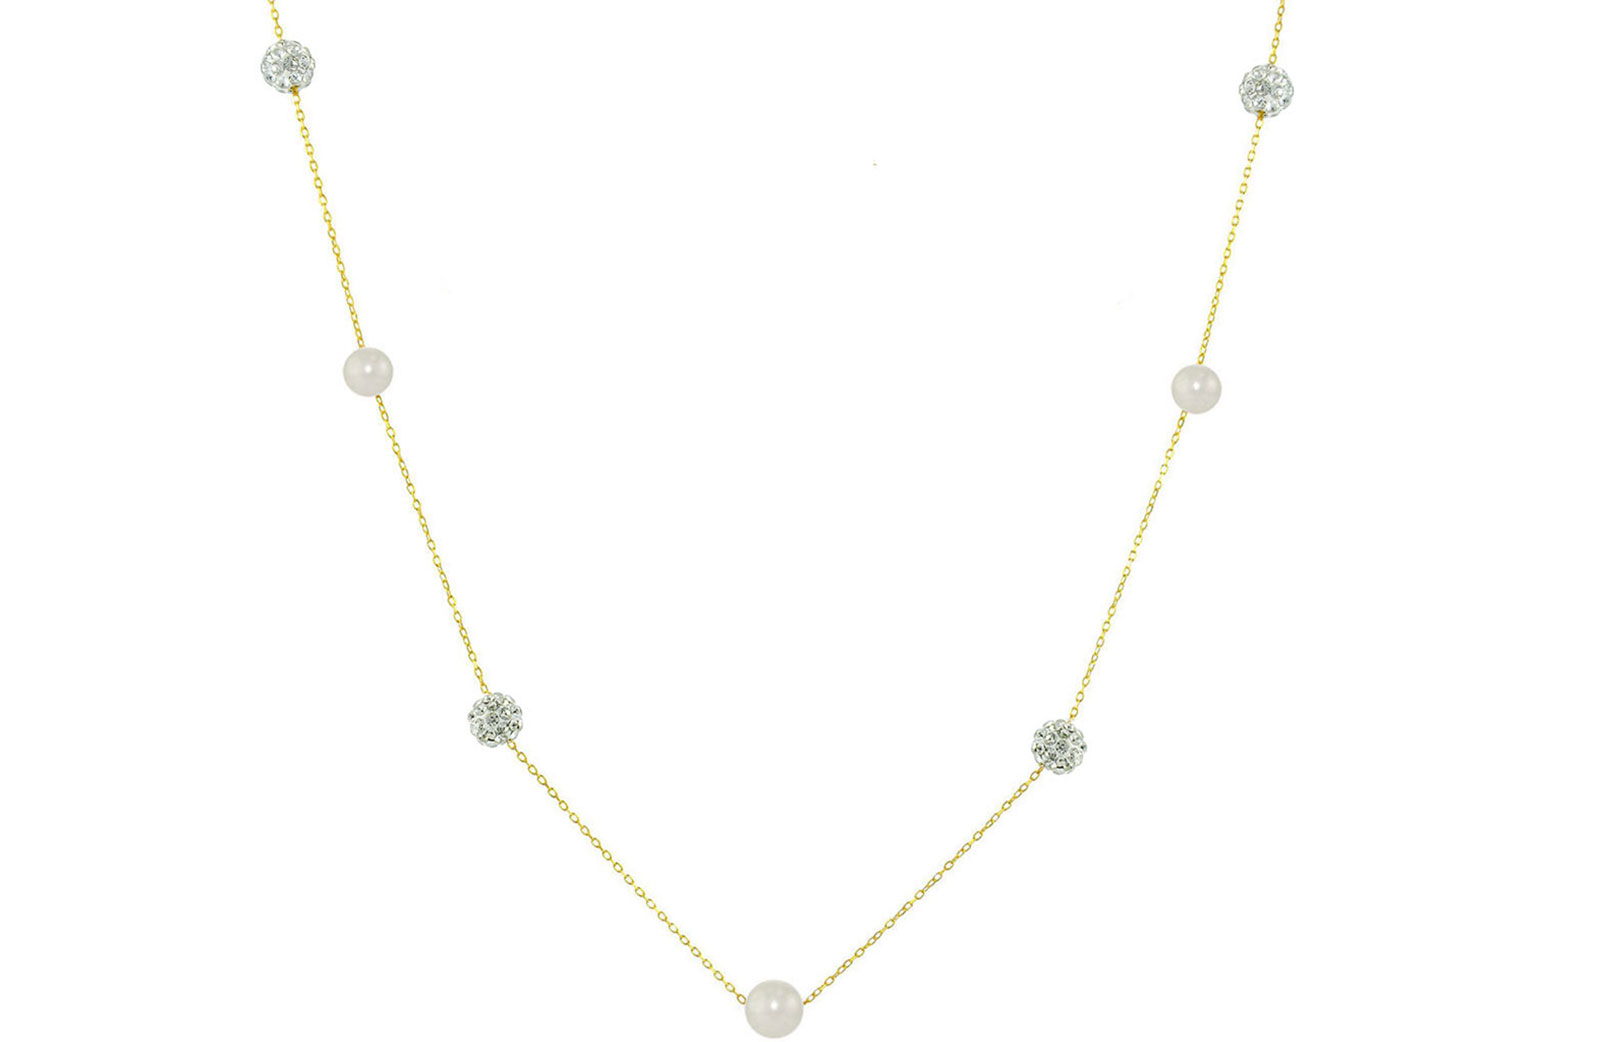 Vera Perla 18K Solid Gold Gradual Built-in 5-6mm White Pearls and Crystal Ball Necklace